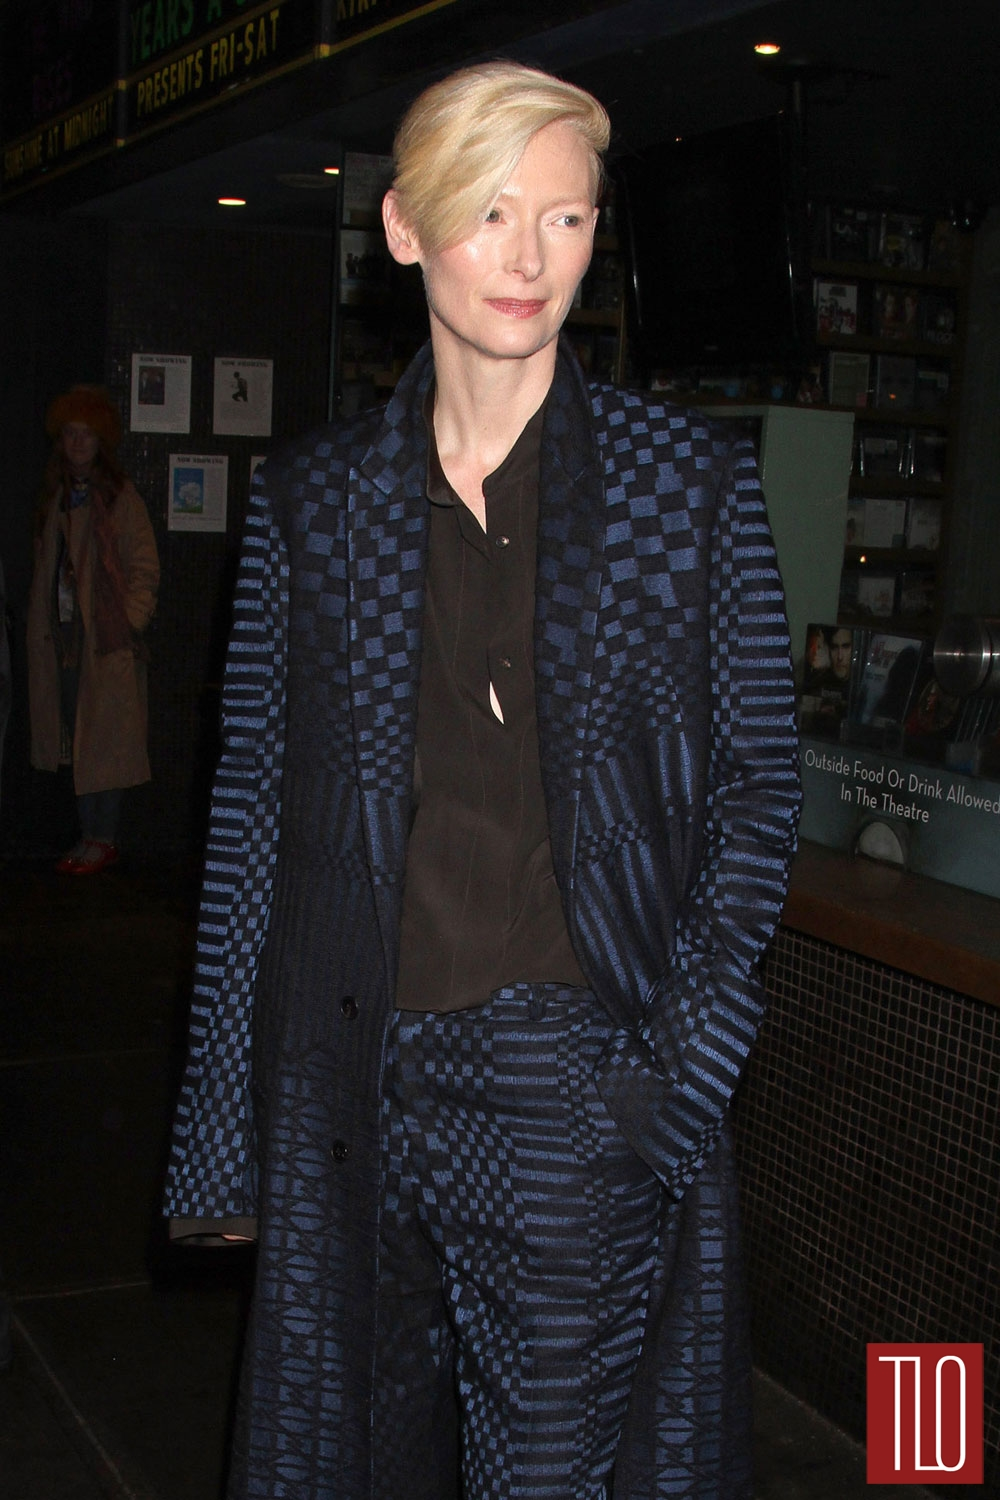 Tilda-Swinton-Haider-Ackerman-Only-Lovers-Left-Alive-Tom-Lorenzo-Site-TLO (1)_wm